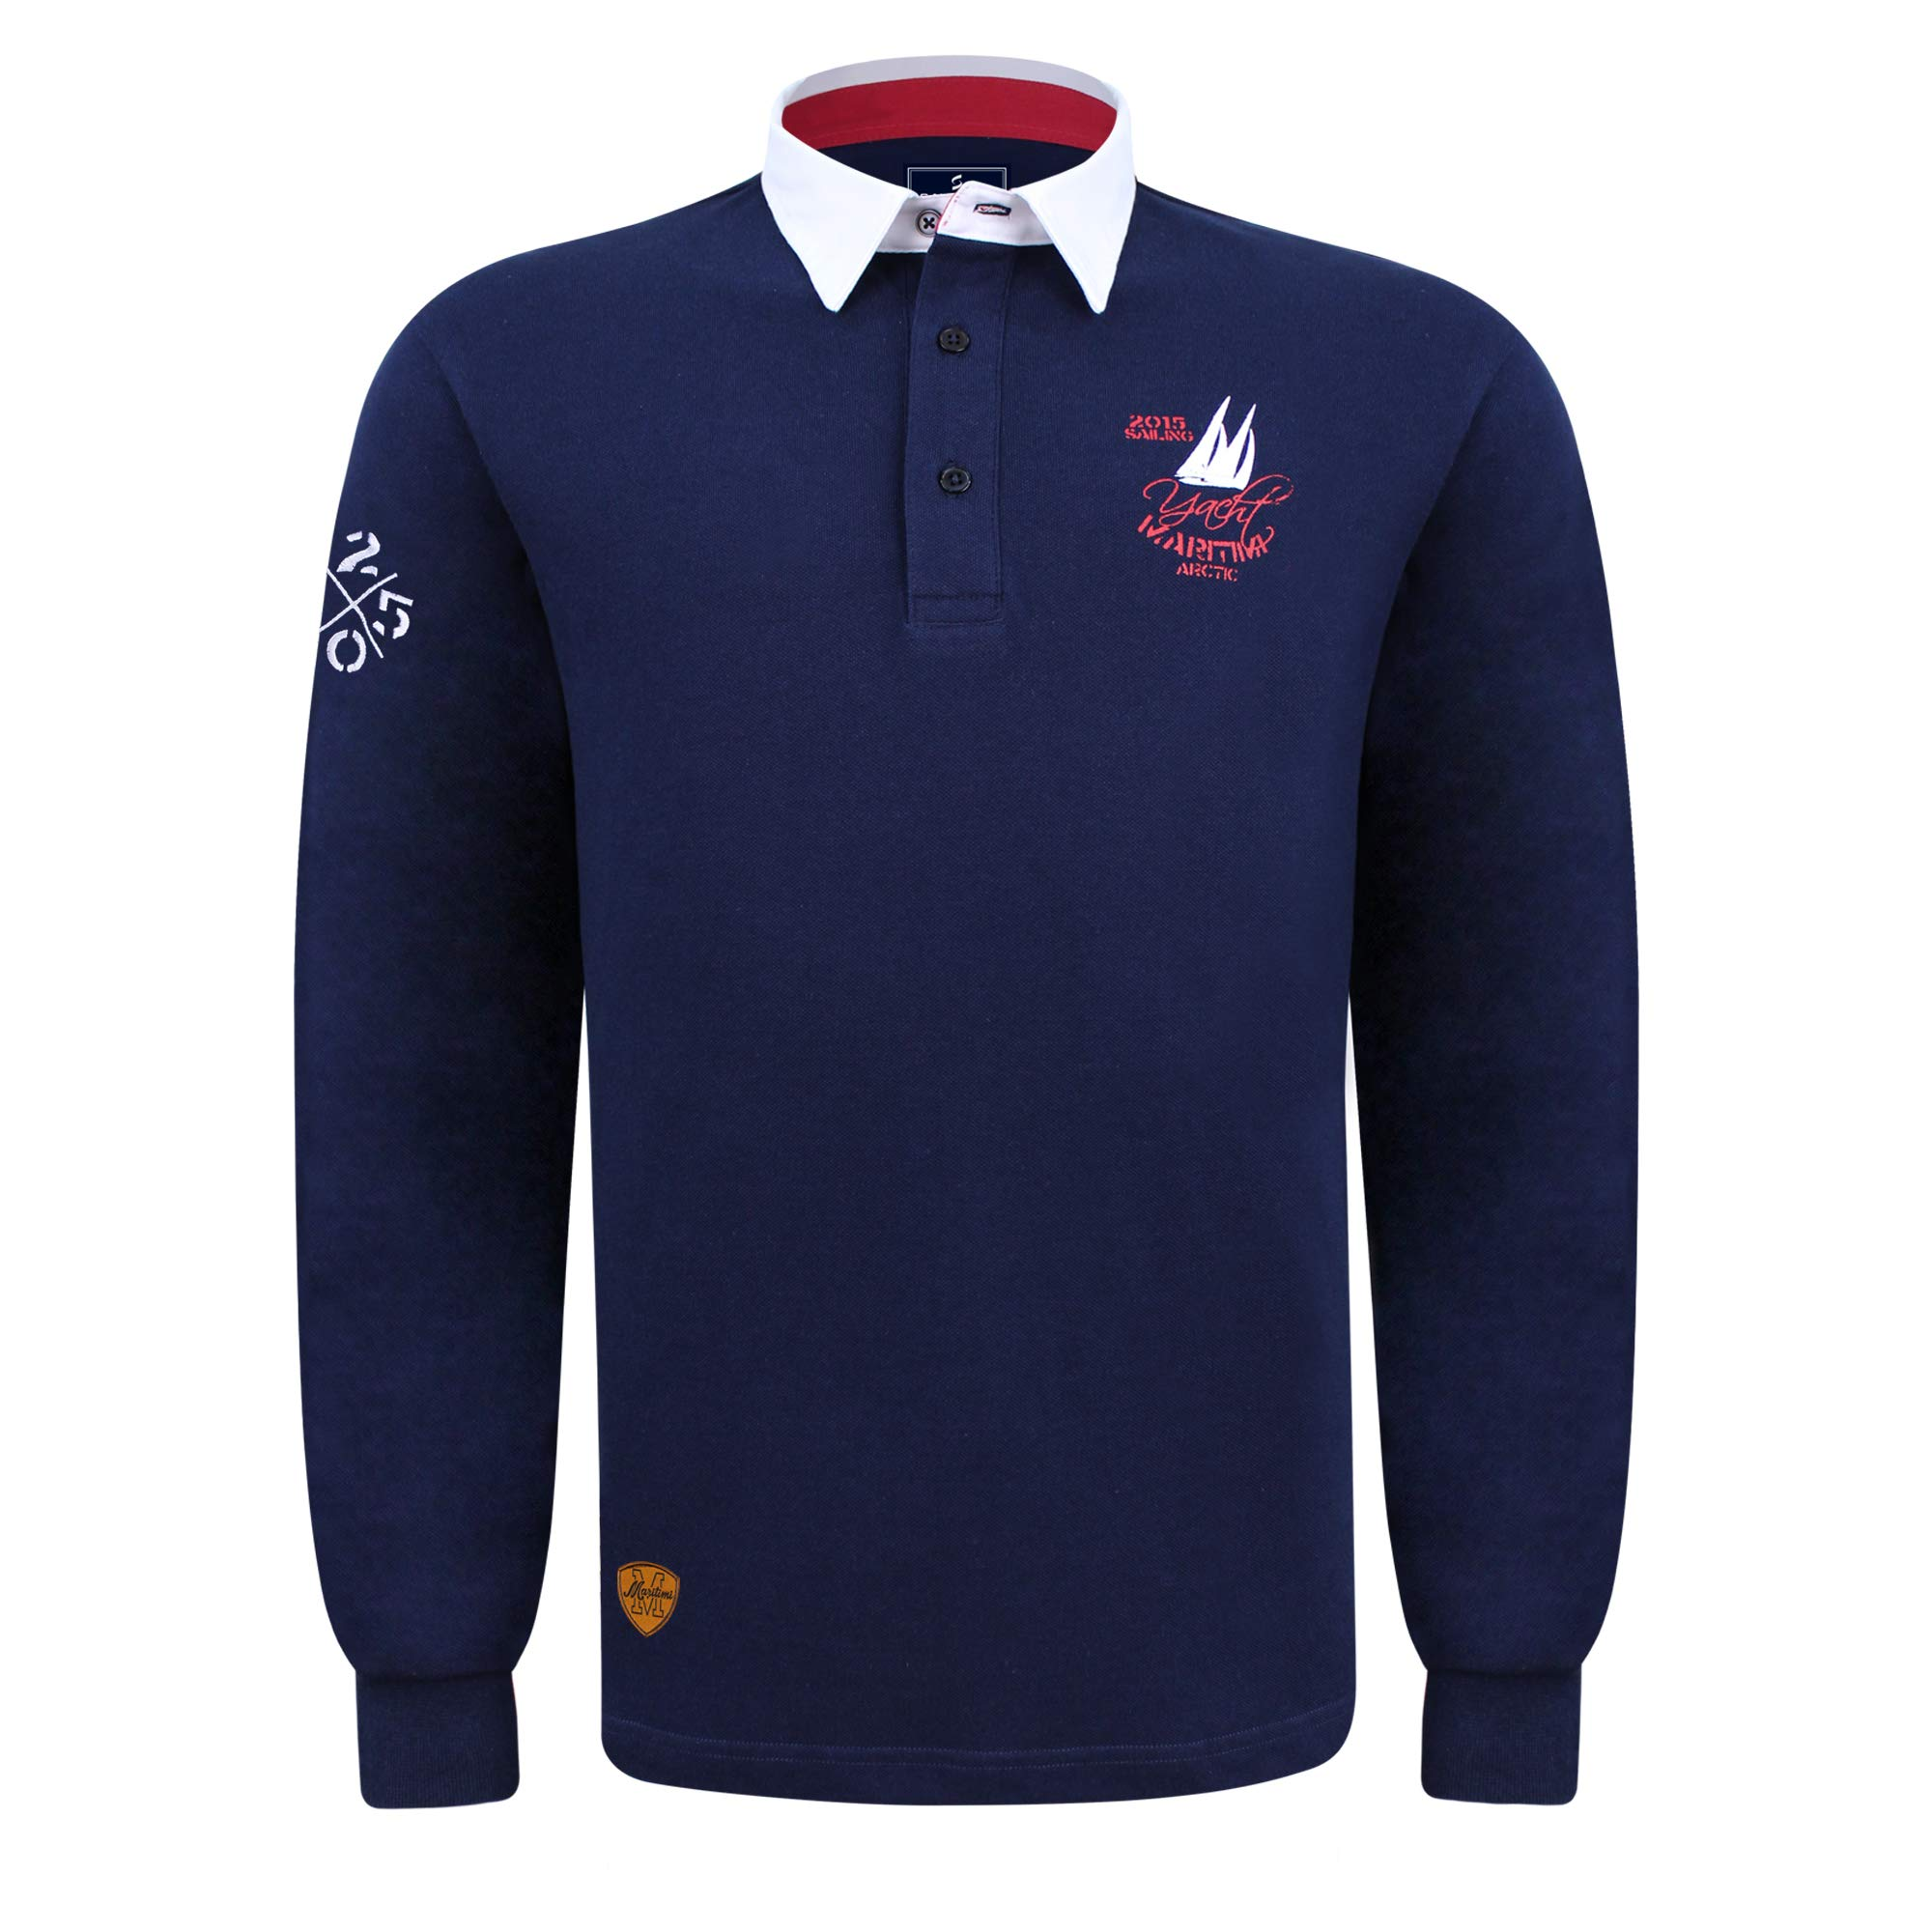 SAVALINO Men's Long Sleeve Polo Sailing Rugby Shirt with Twill Collar, Piquet Cotton, Sports & Leisure Wear, Size XS-3XL